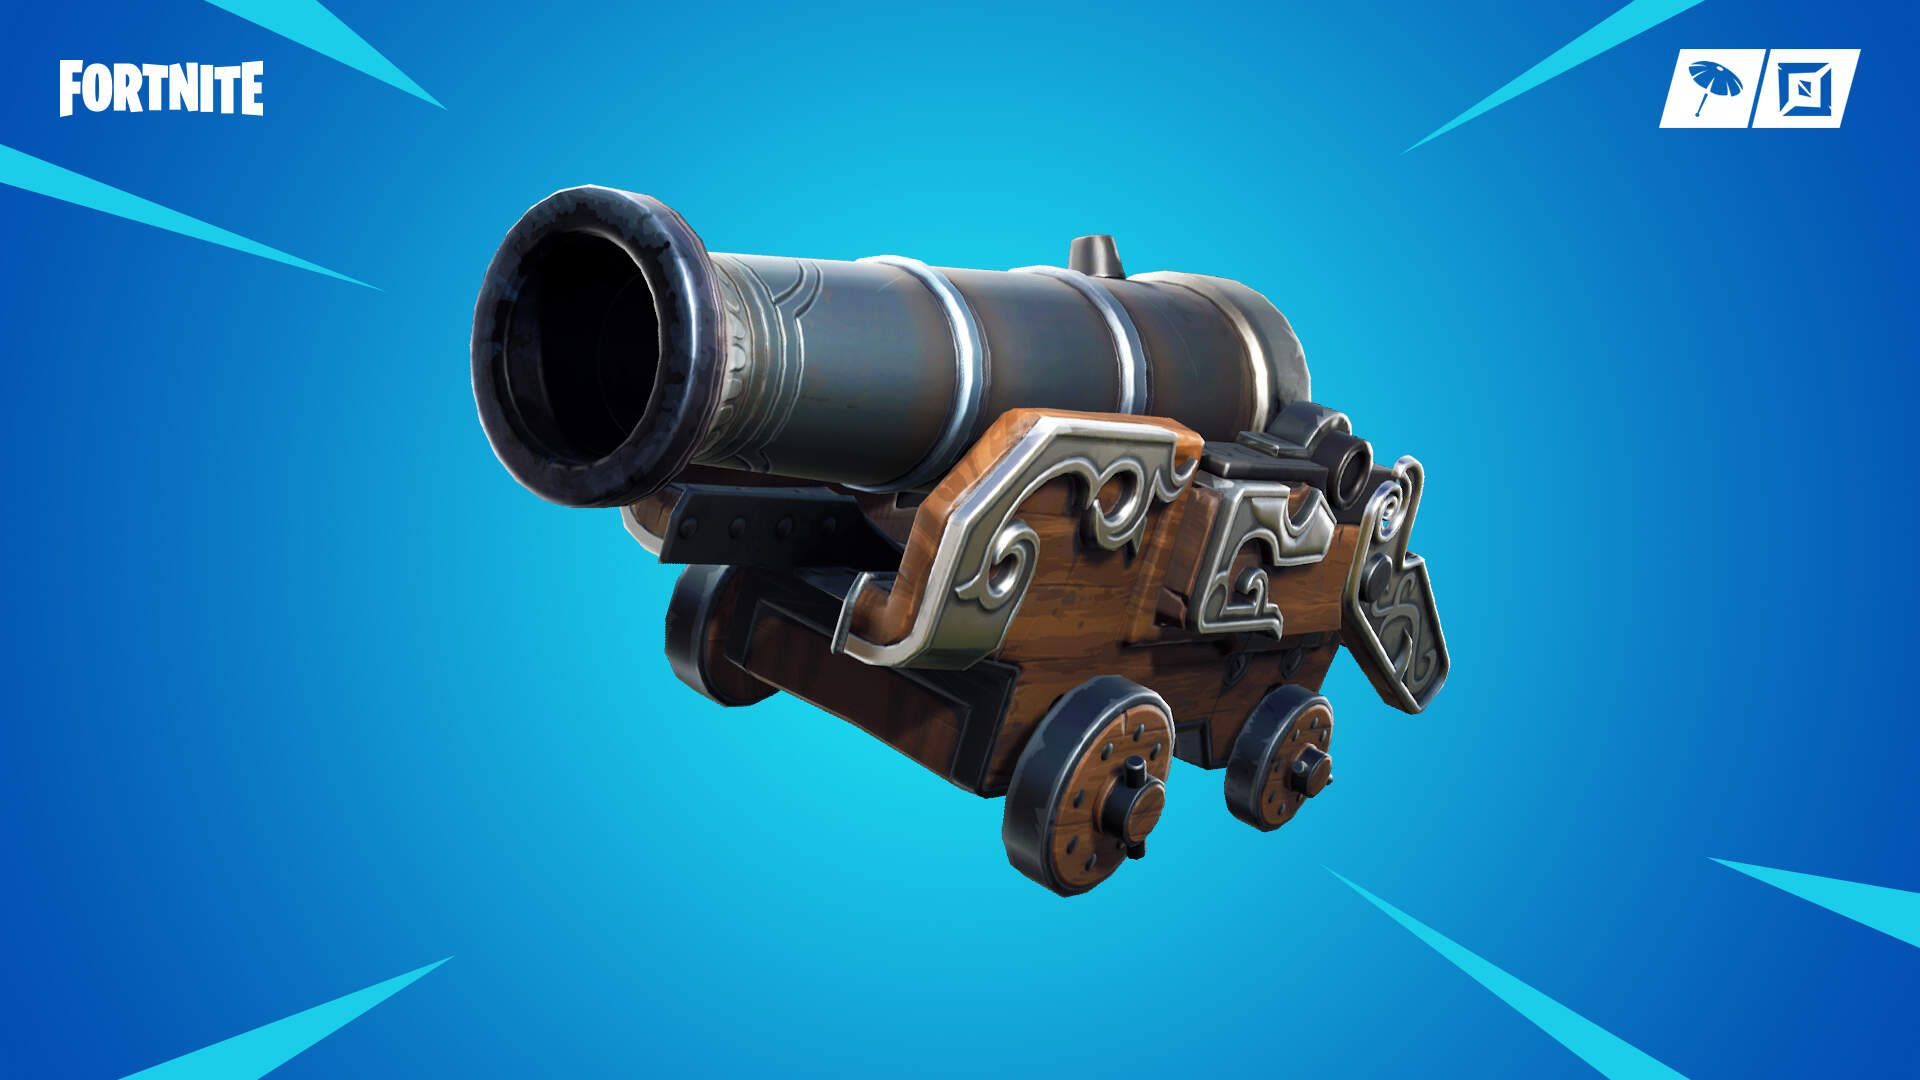 Fortnite Season 8 Patch Notes Bring Cannons and Banana Skins